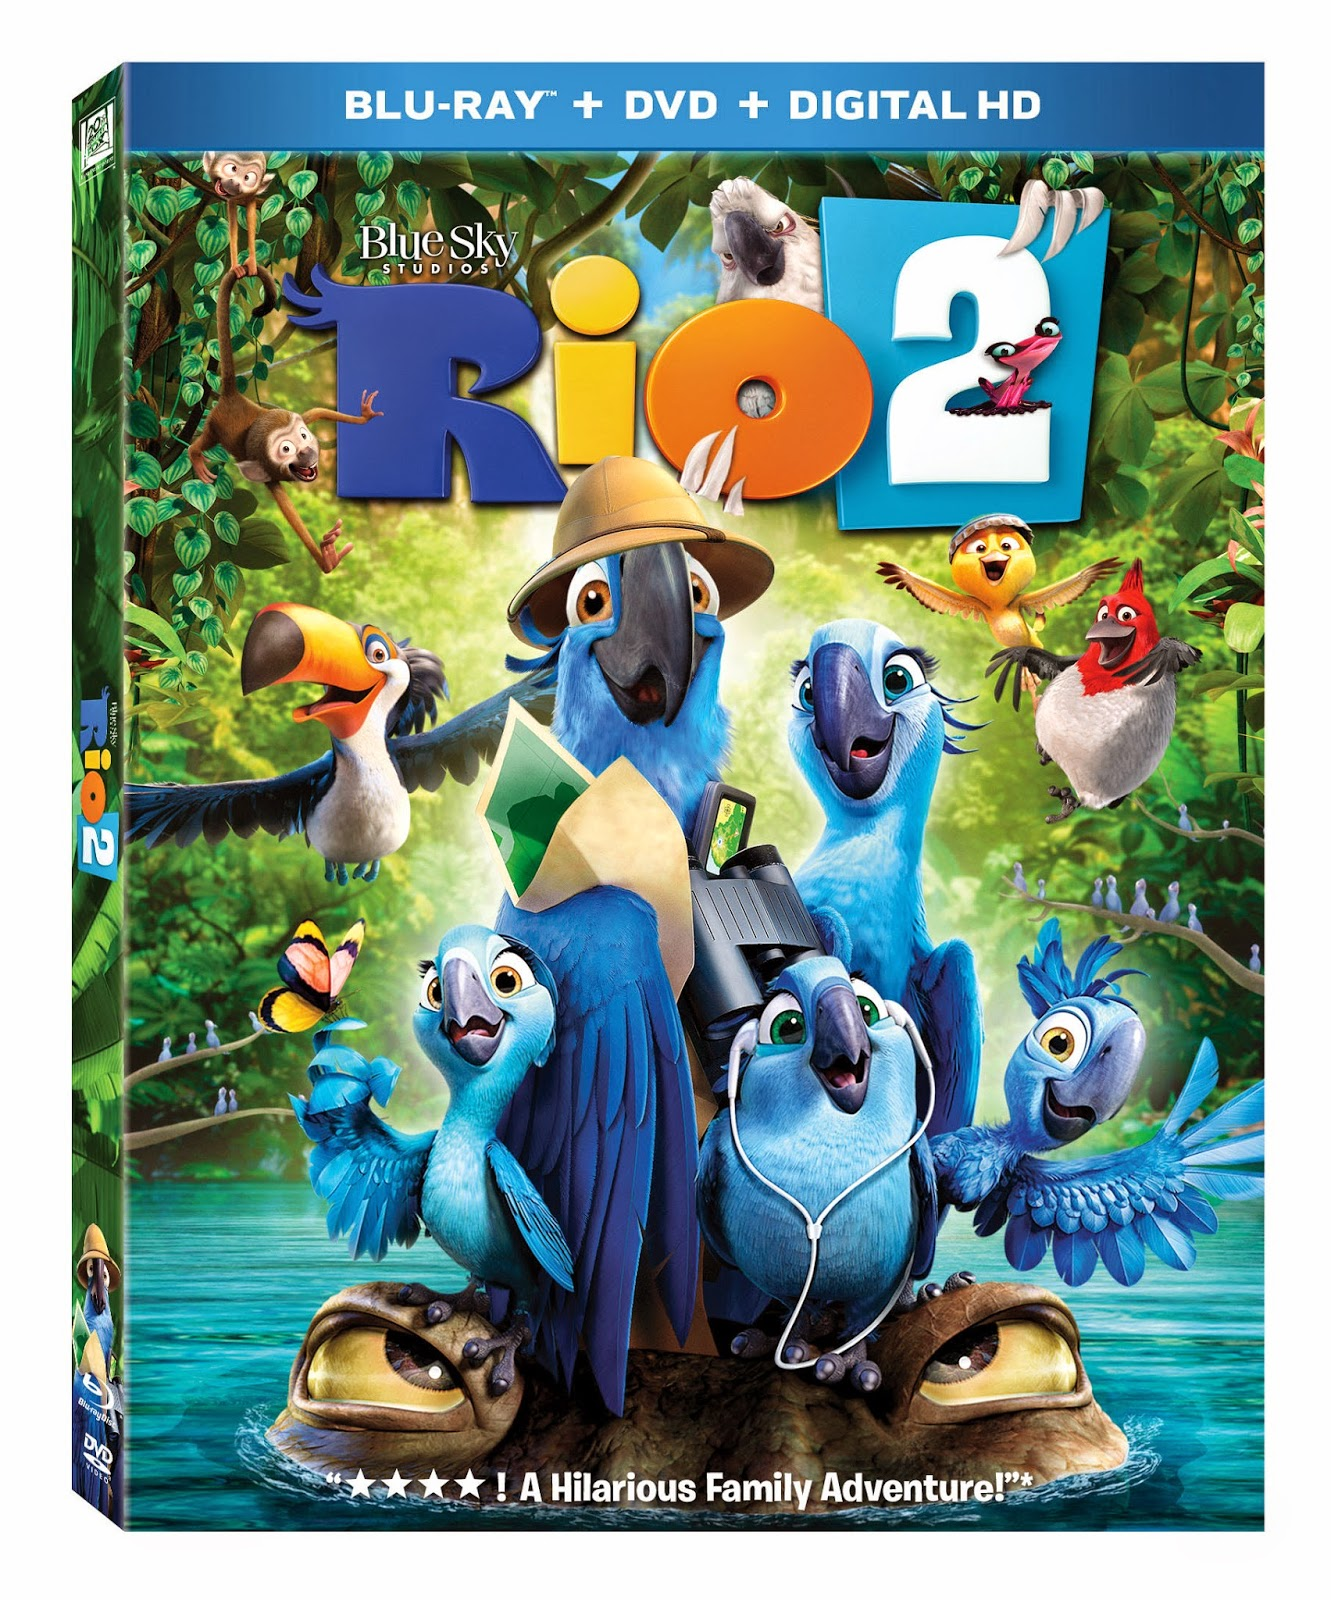 a geek daddy: free rio 2 coloring pages & bluray/dvd/digital